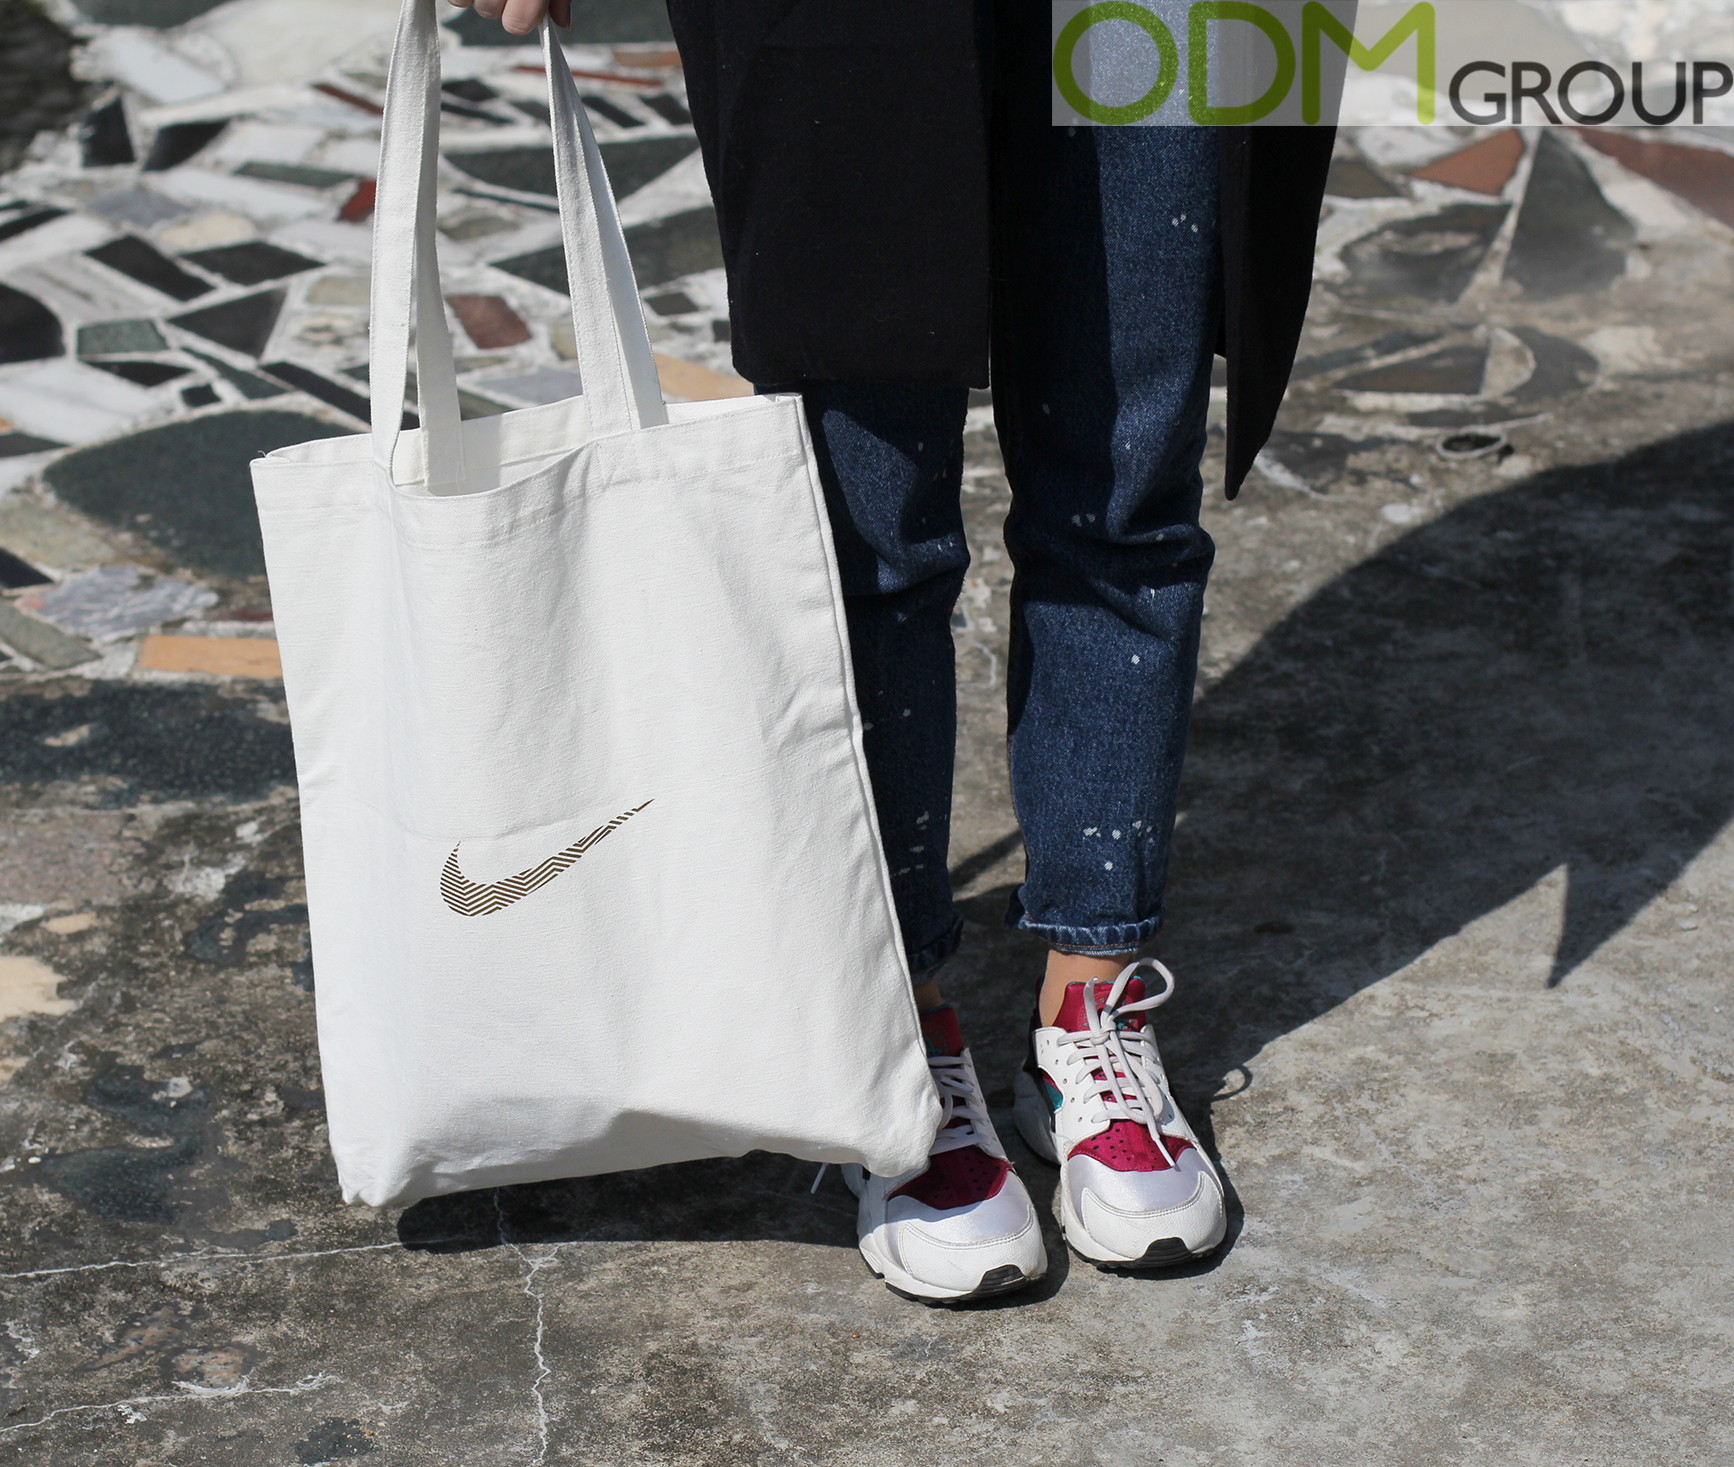 Branded Canvas Bag: Promotional Giveaway by Nike